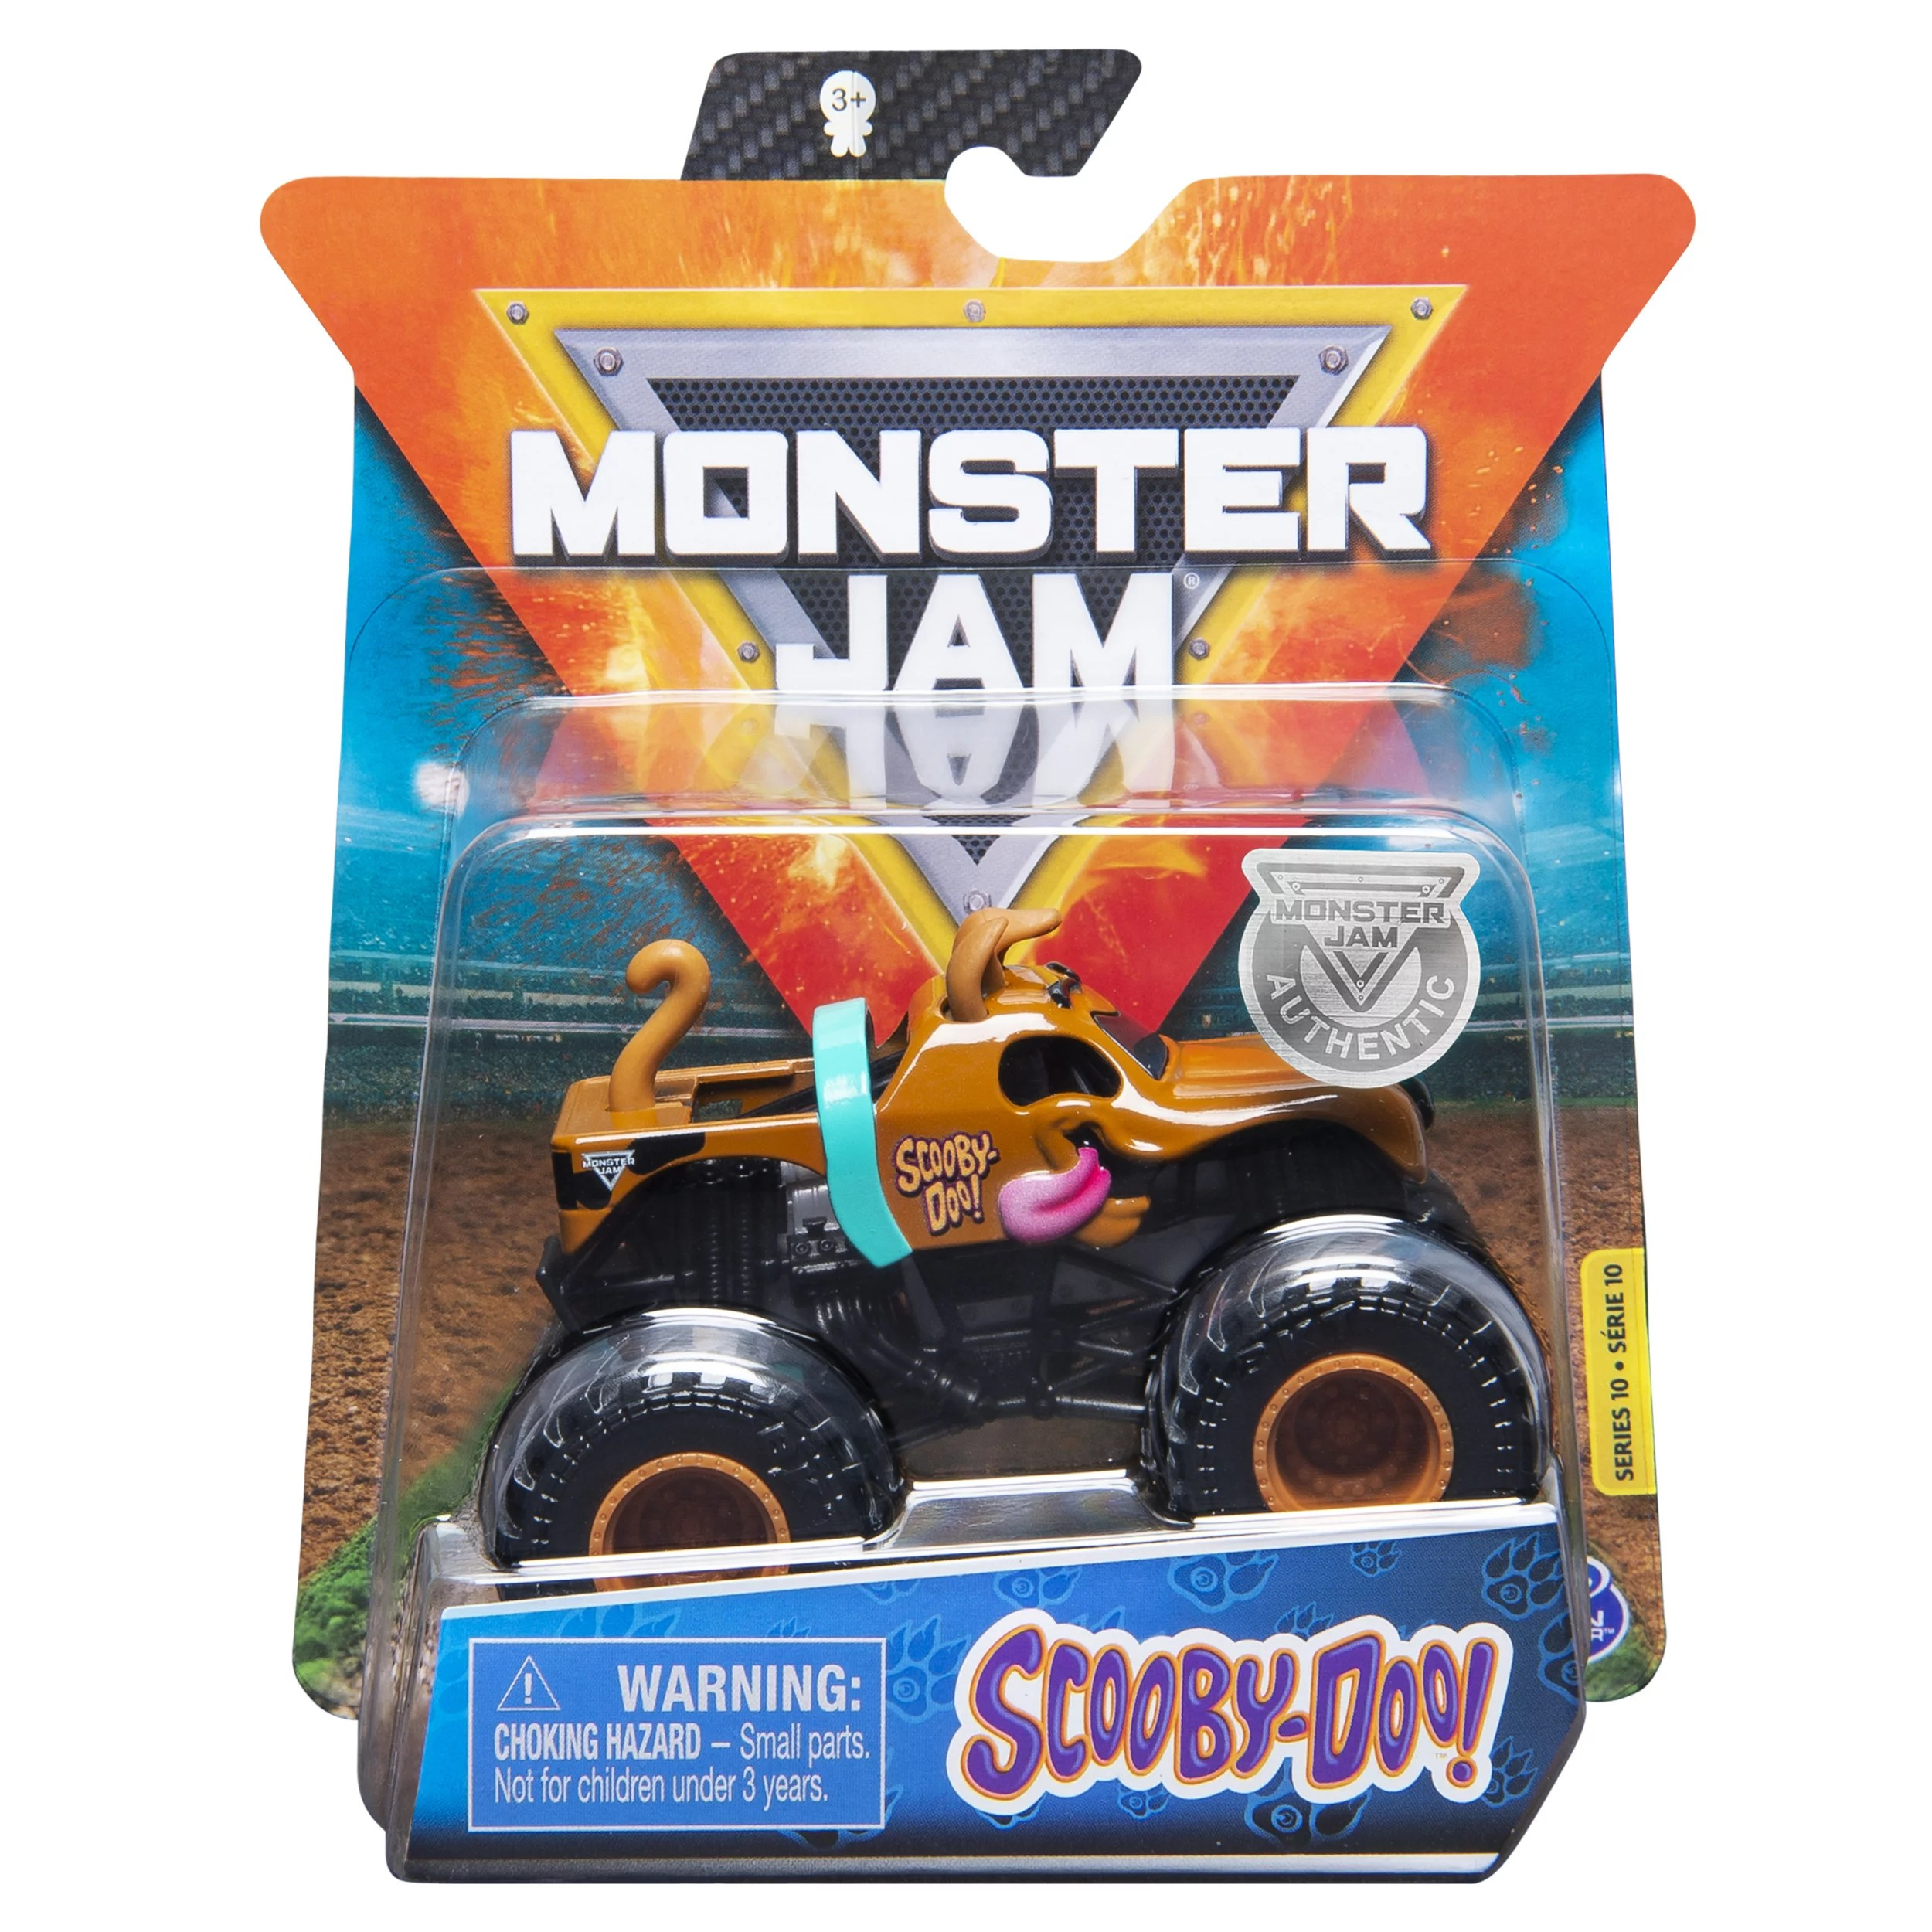 Monster Jam Official Scooby Doo Truck Cast Vehicle